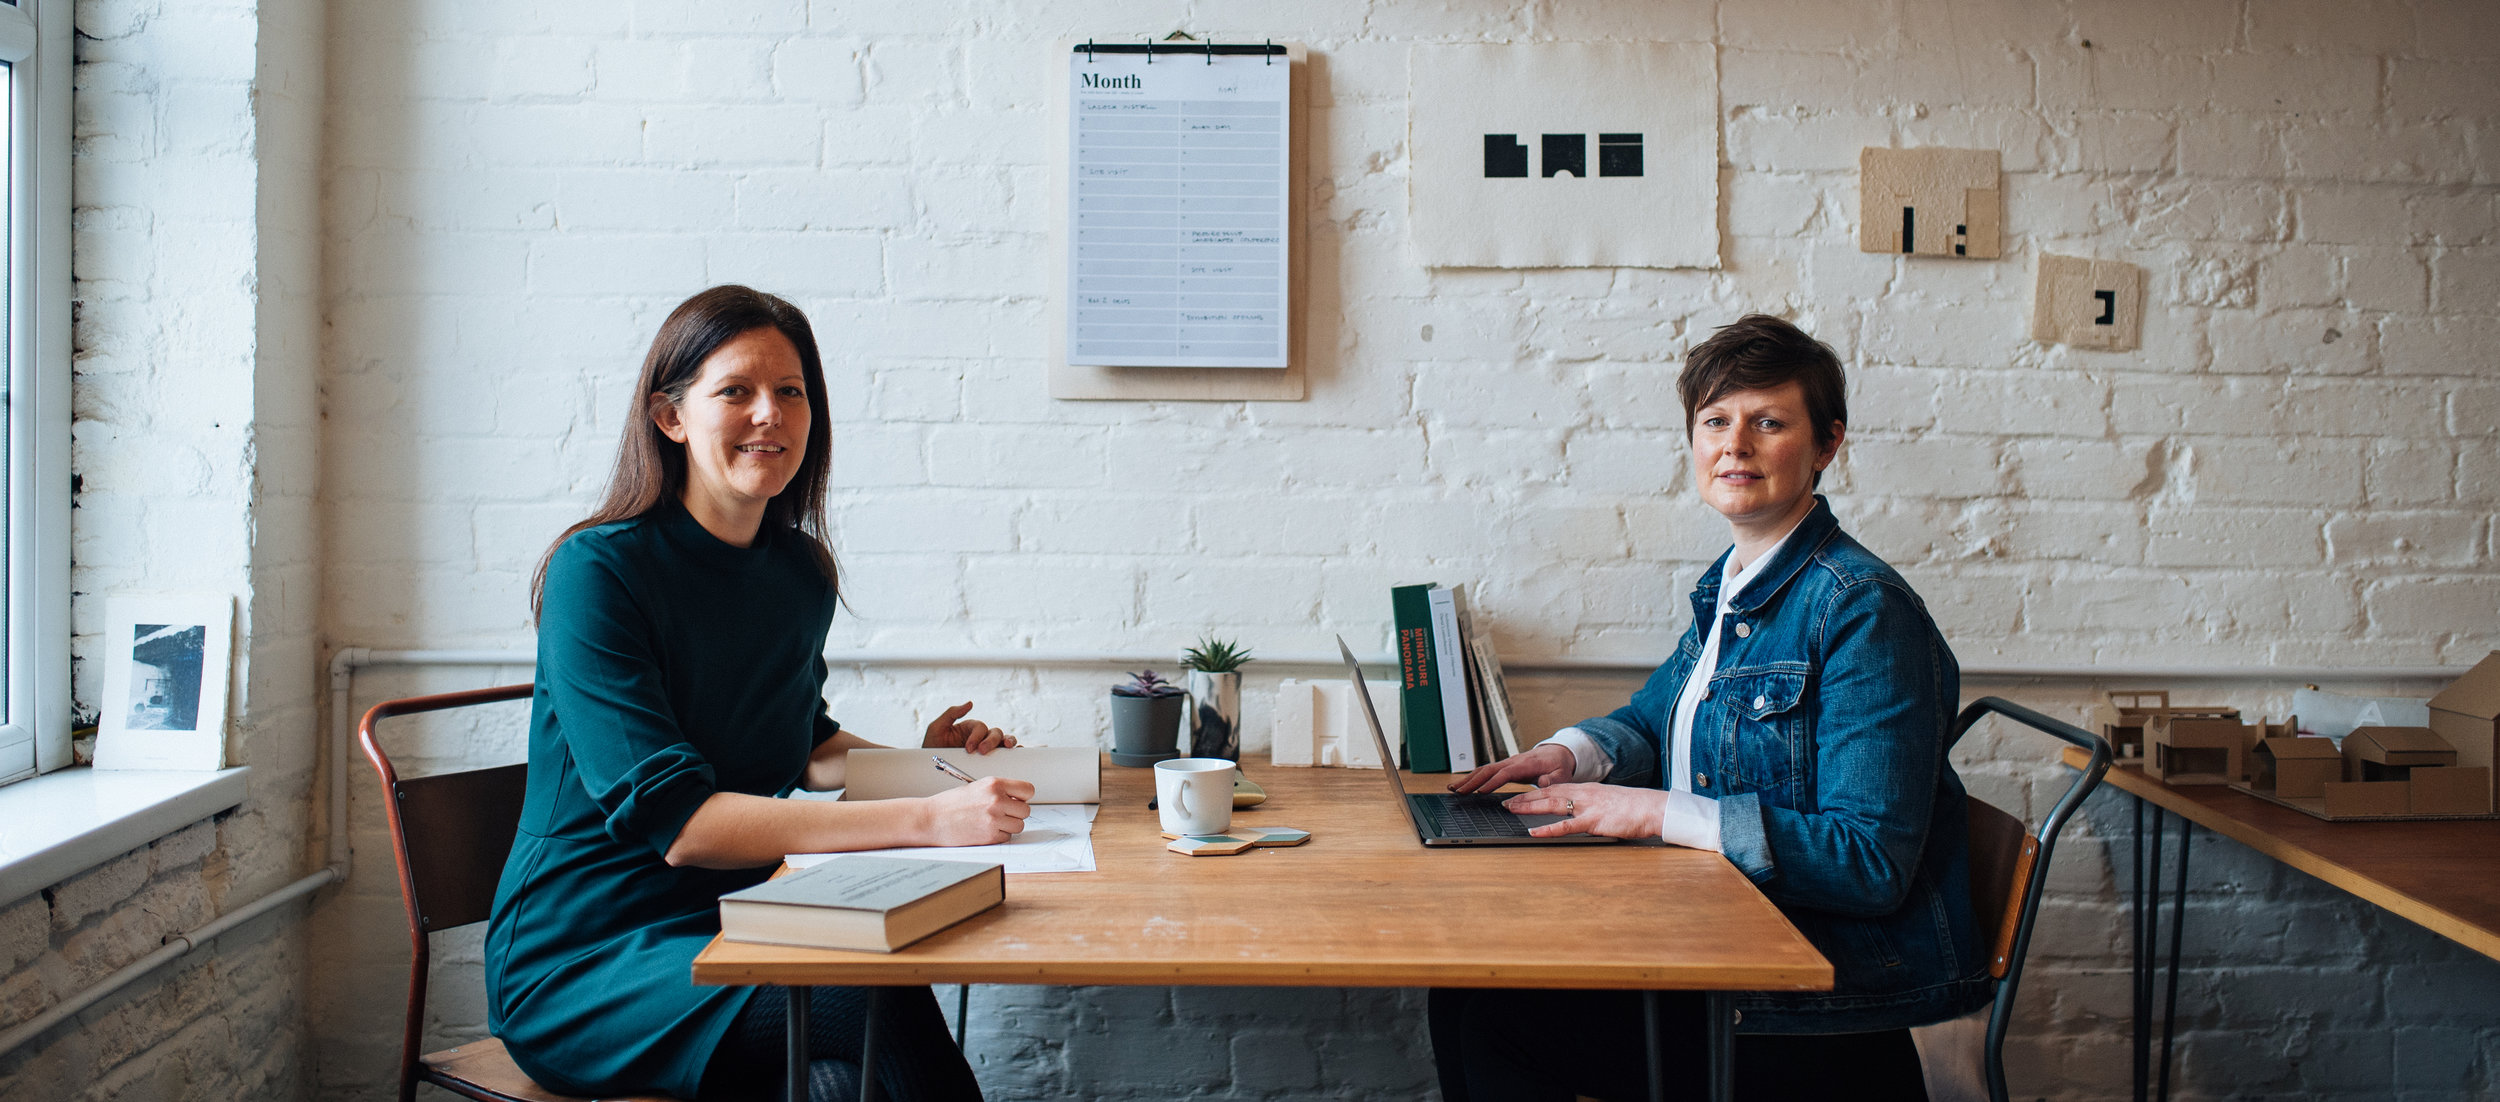 Rhian Thomas and Amanda Spence, architects and partners at ALT-Architecture, Cardiff, at work in the studio